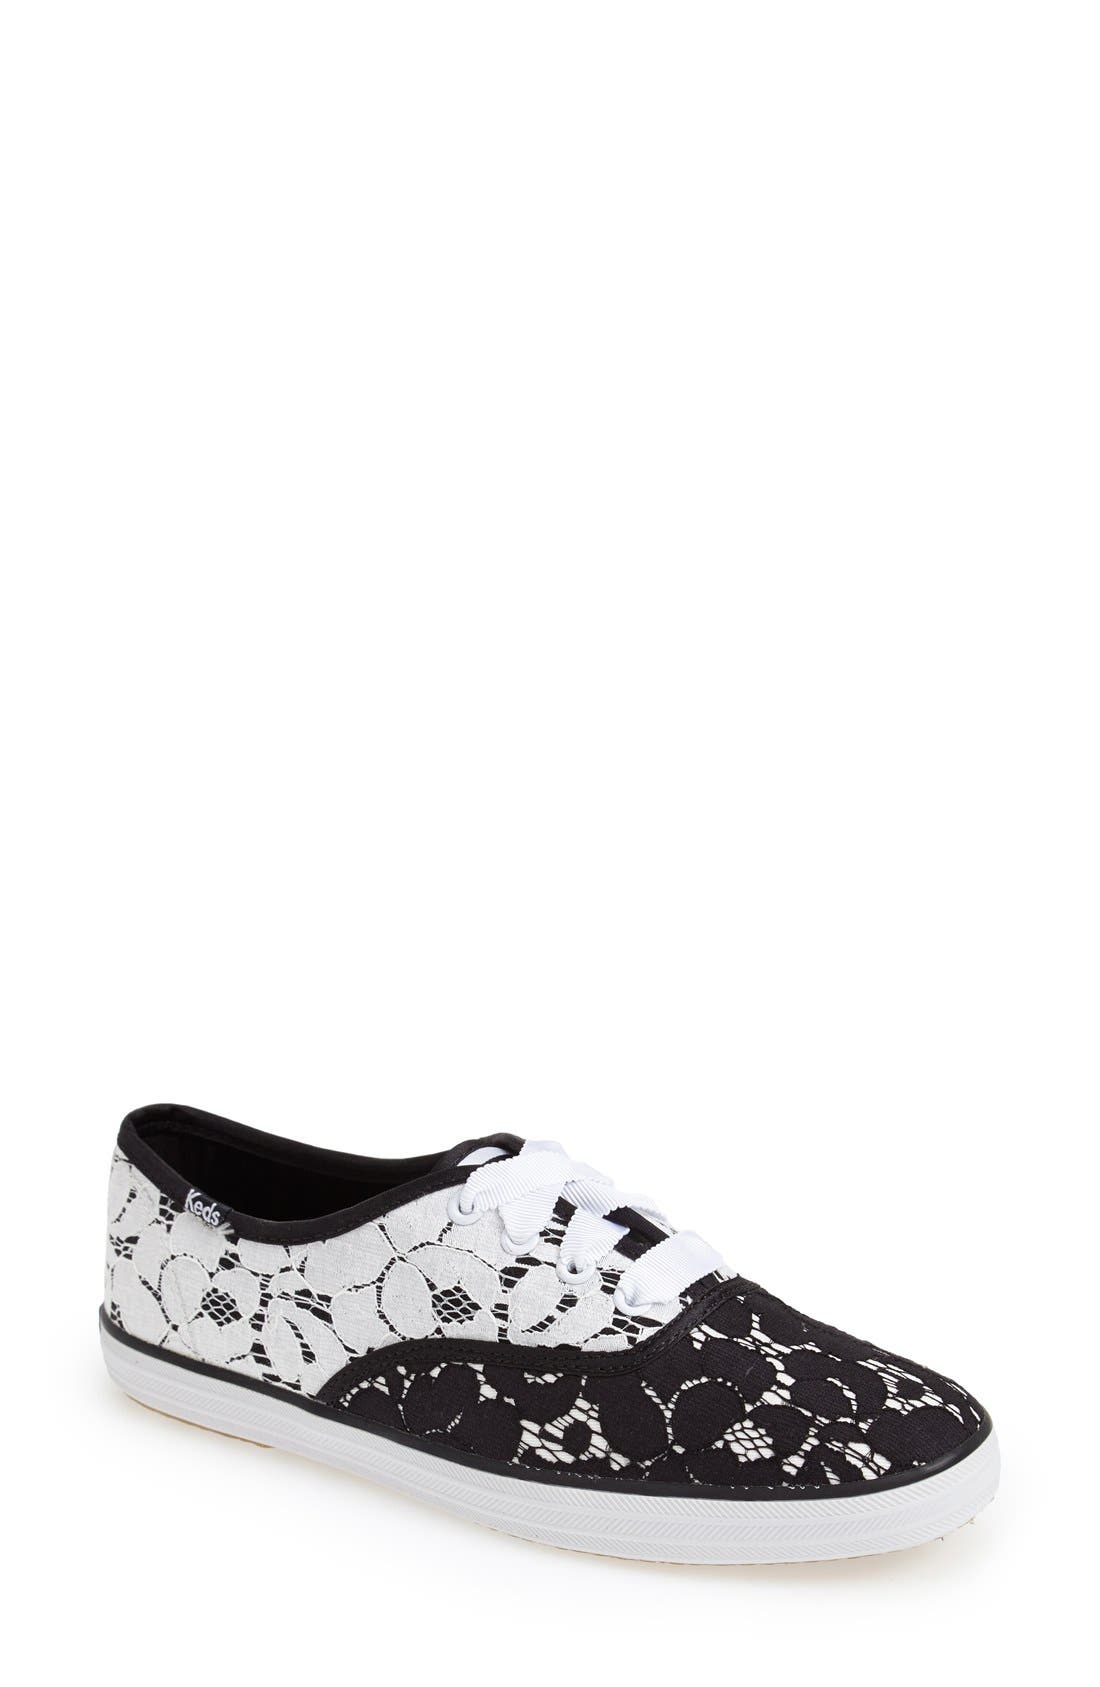 Alternate Image 1 Selected - Keds® 'Champion - Lace' Sneaker (Women)